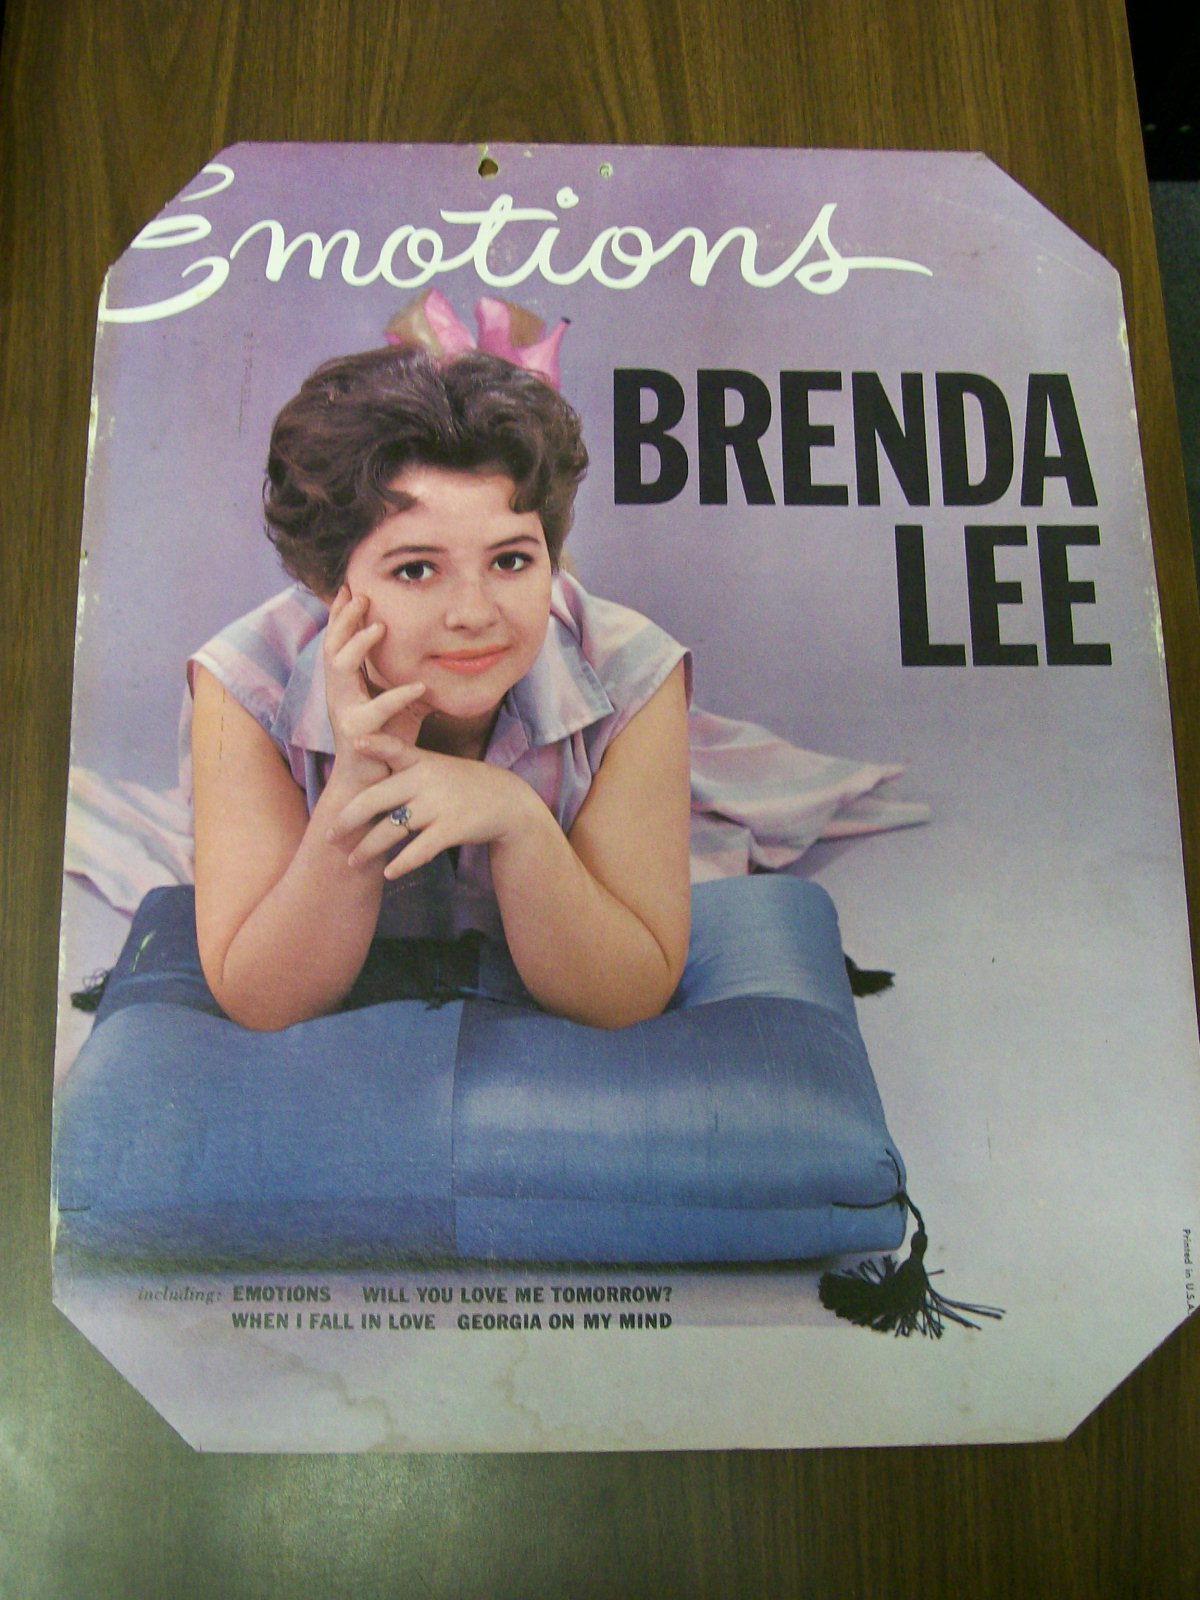 EMOTIONS BRENDA LEE POSTER 1960 PRINTED IN U.S.A.